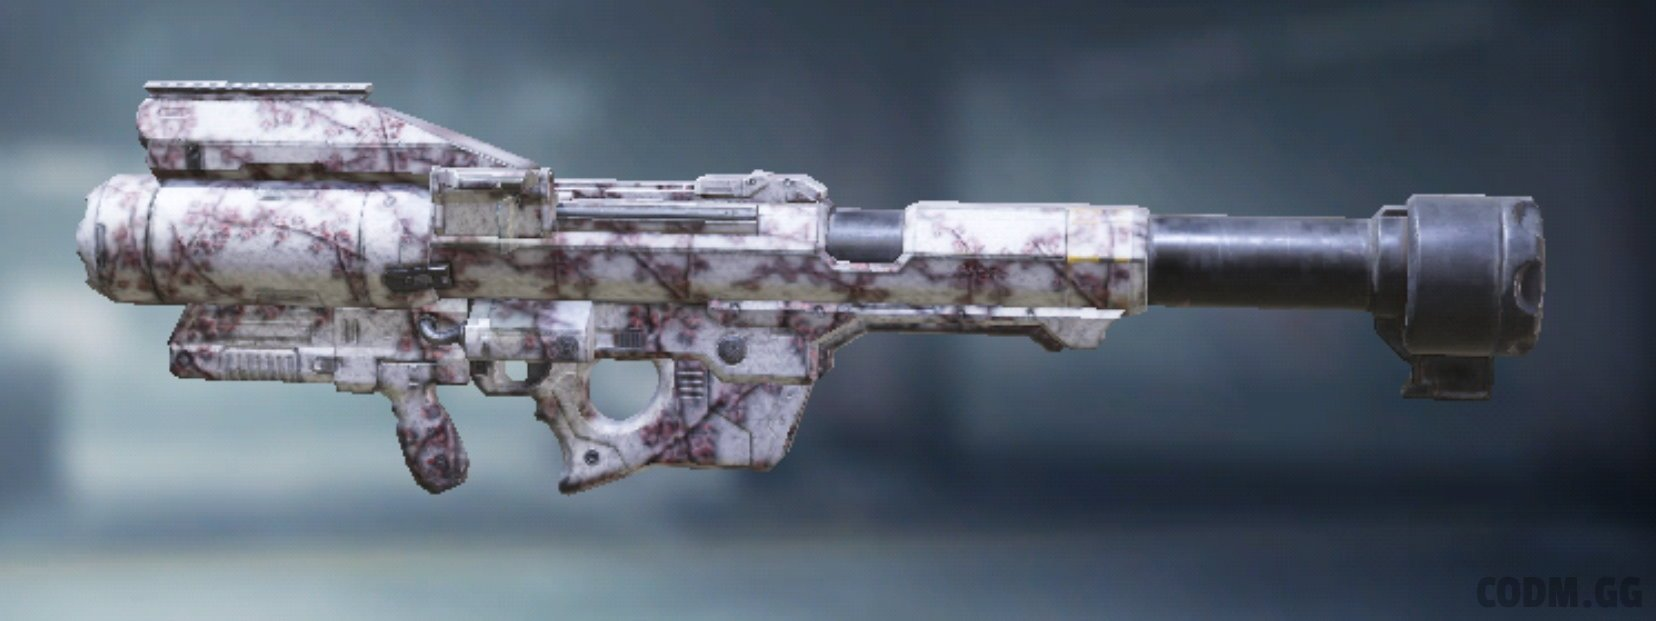 FHJ-18 Hereafter, Uncommon camo in Call of Duty Mobile